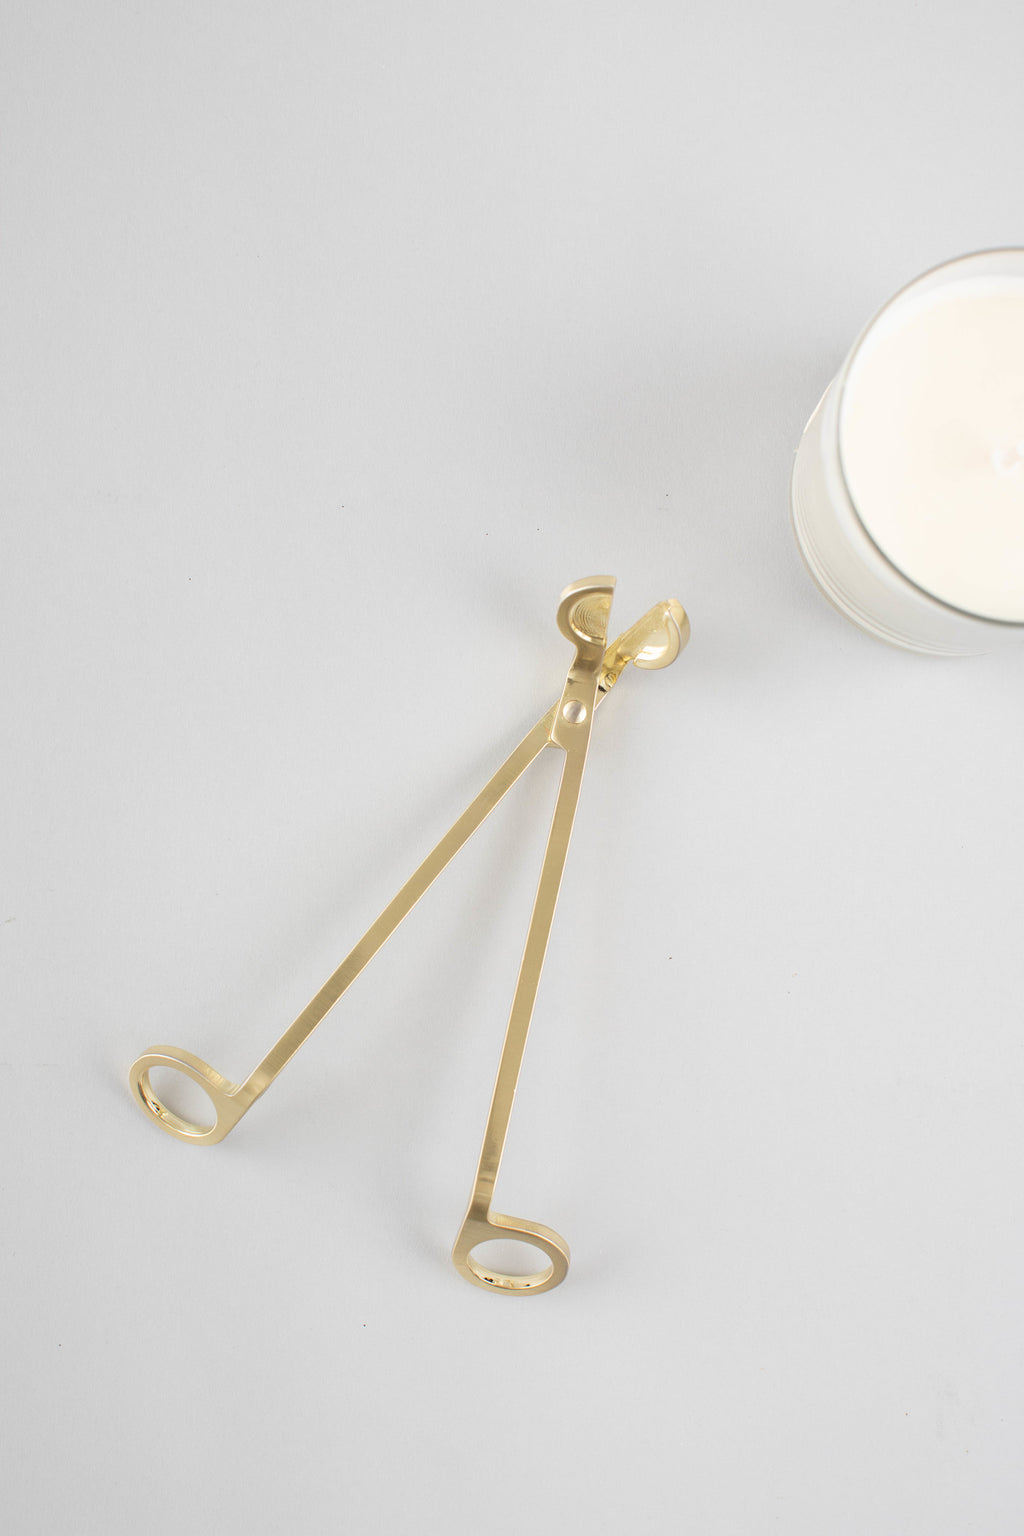 Brushed Gold Wick Trimmer